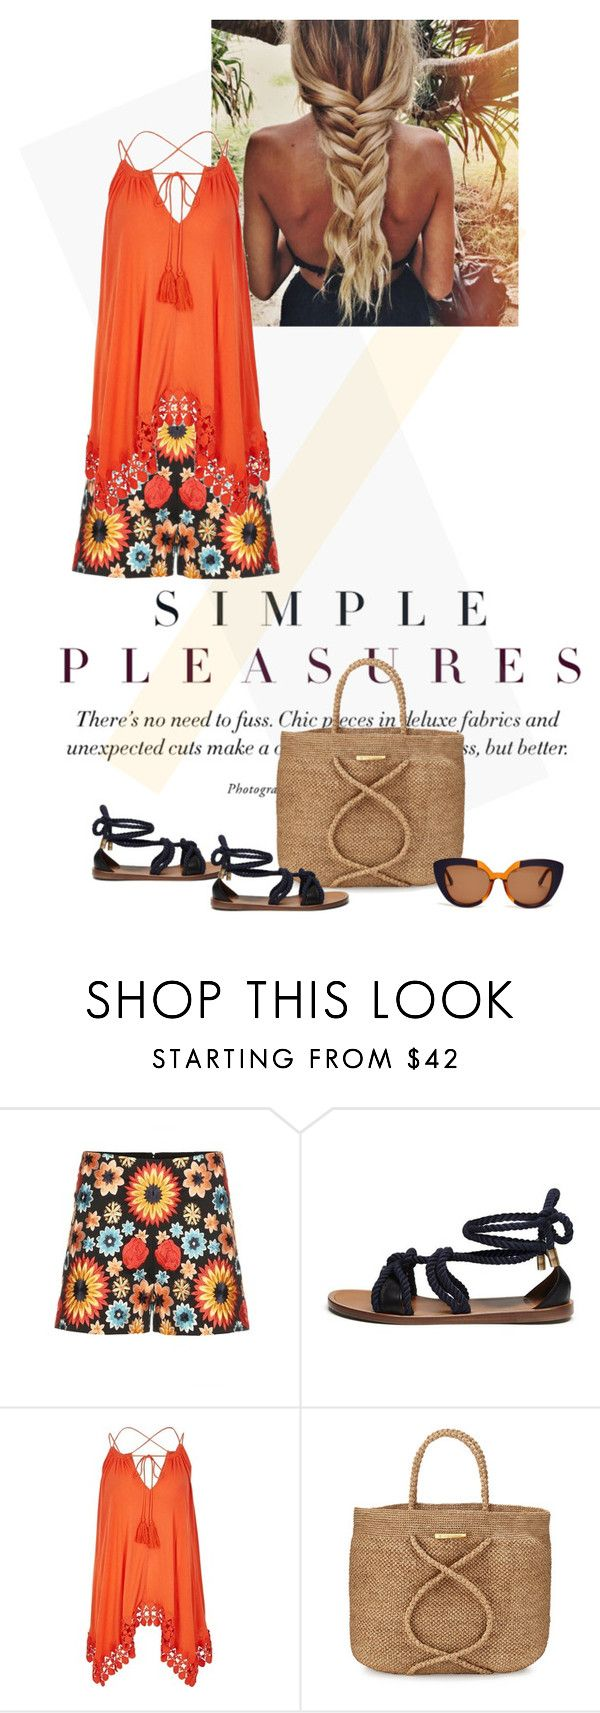 """."" by fashionmonkey1 ❤ liked on Polyvore featuring Alice + Olivia, Mulberry, River Island, ViX and Marni"